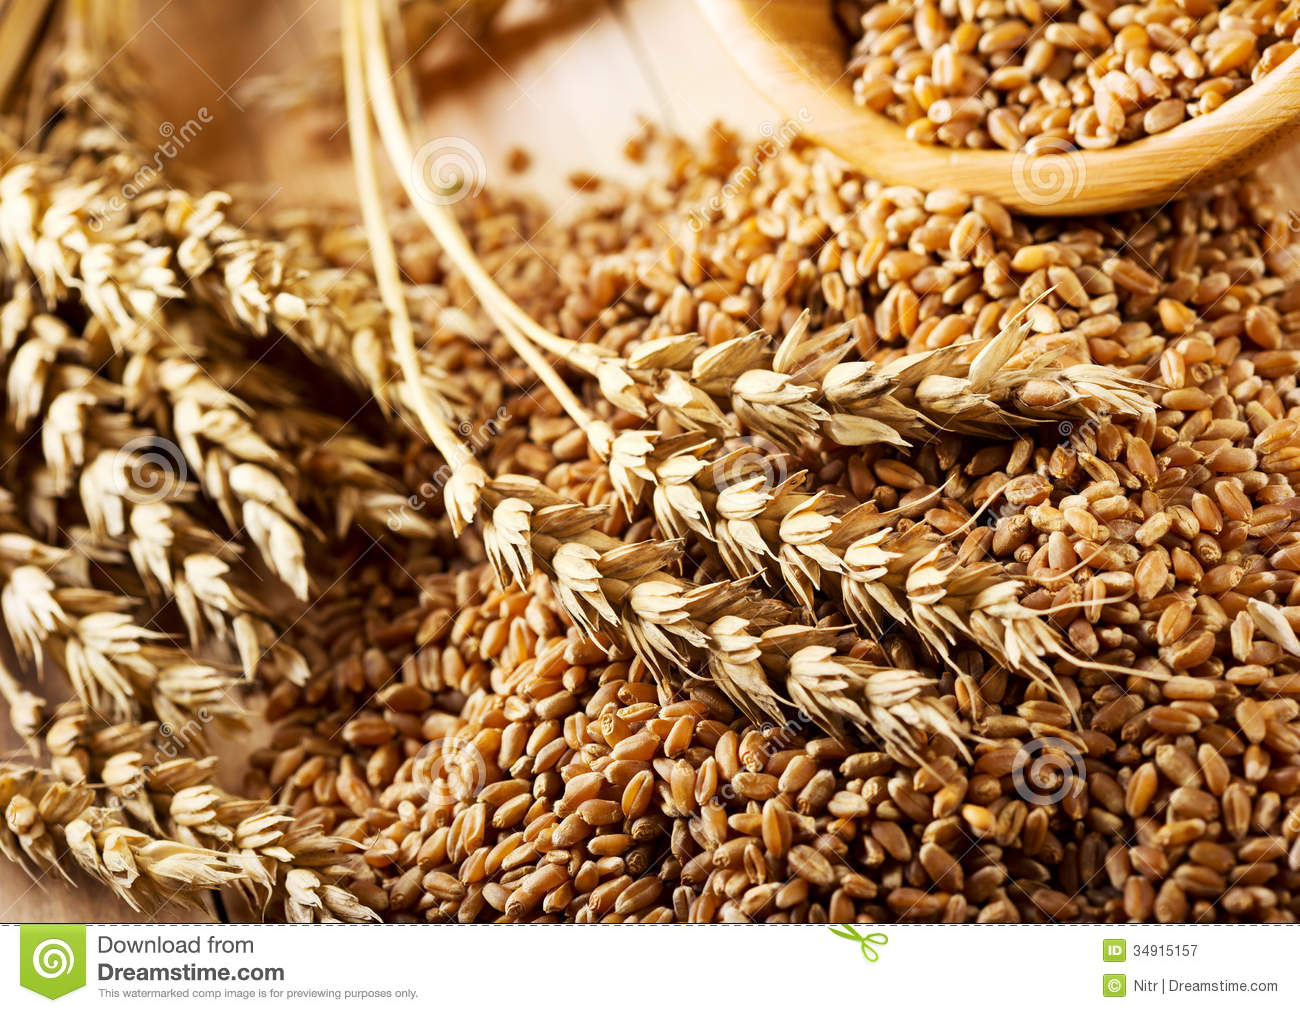 Wheat Grains Royalty Free Stock Photography - Image: 34915157